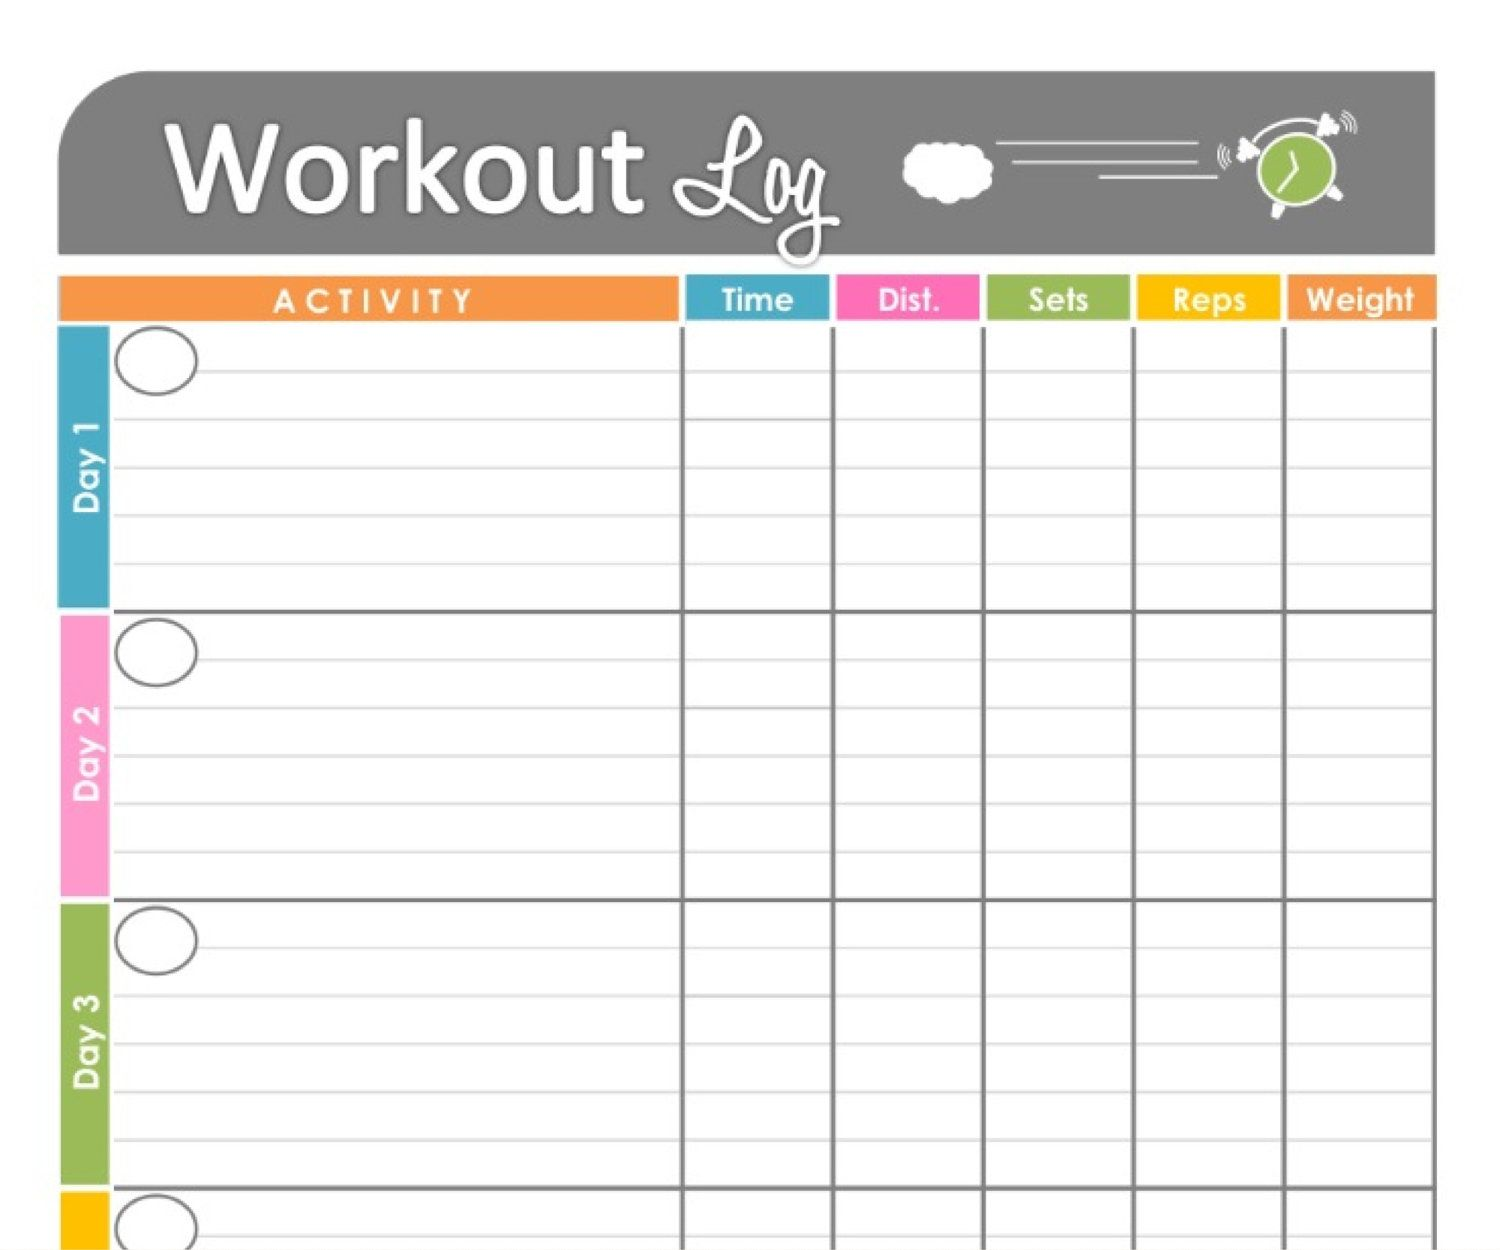 Workout Log Exercise Log Printable For By